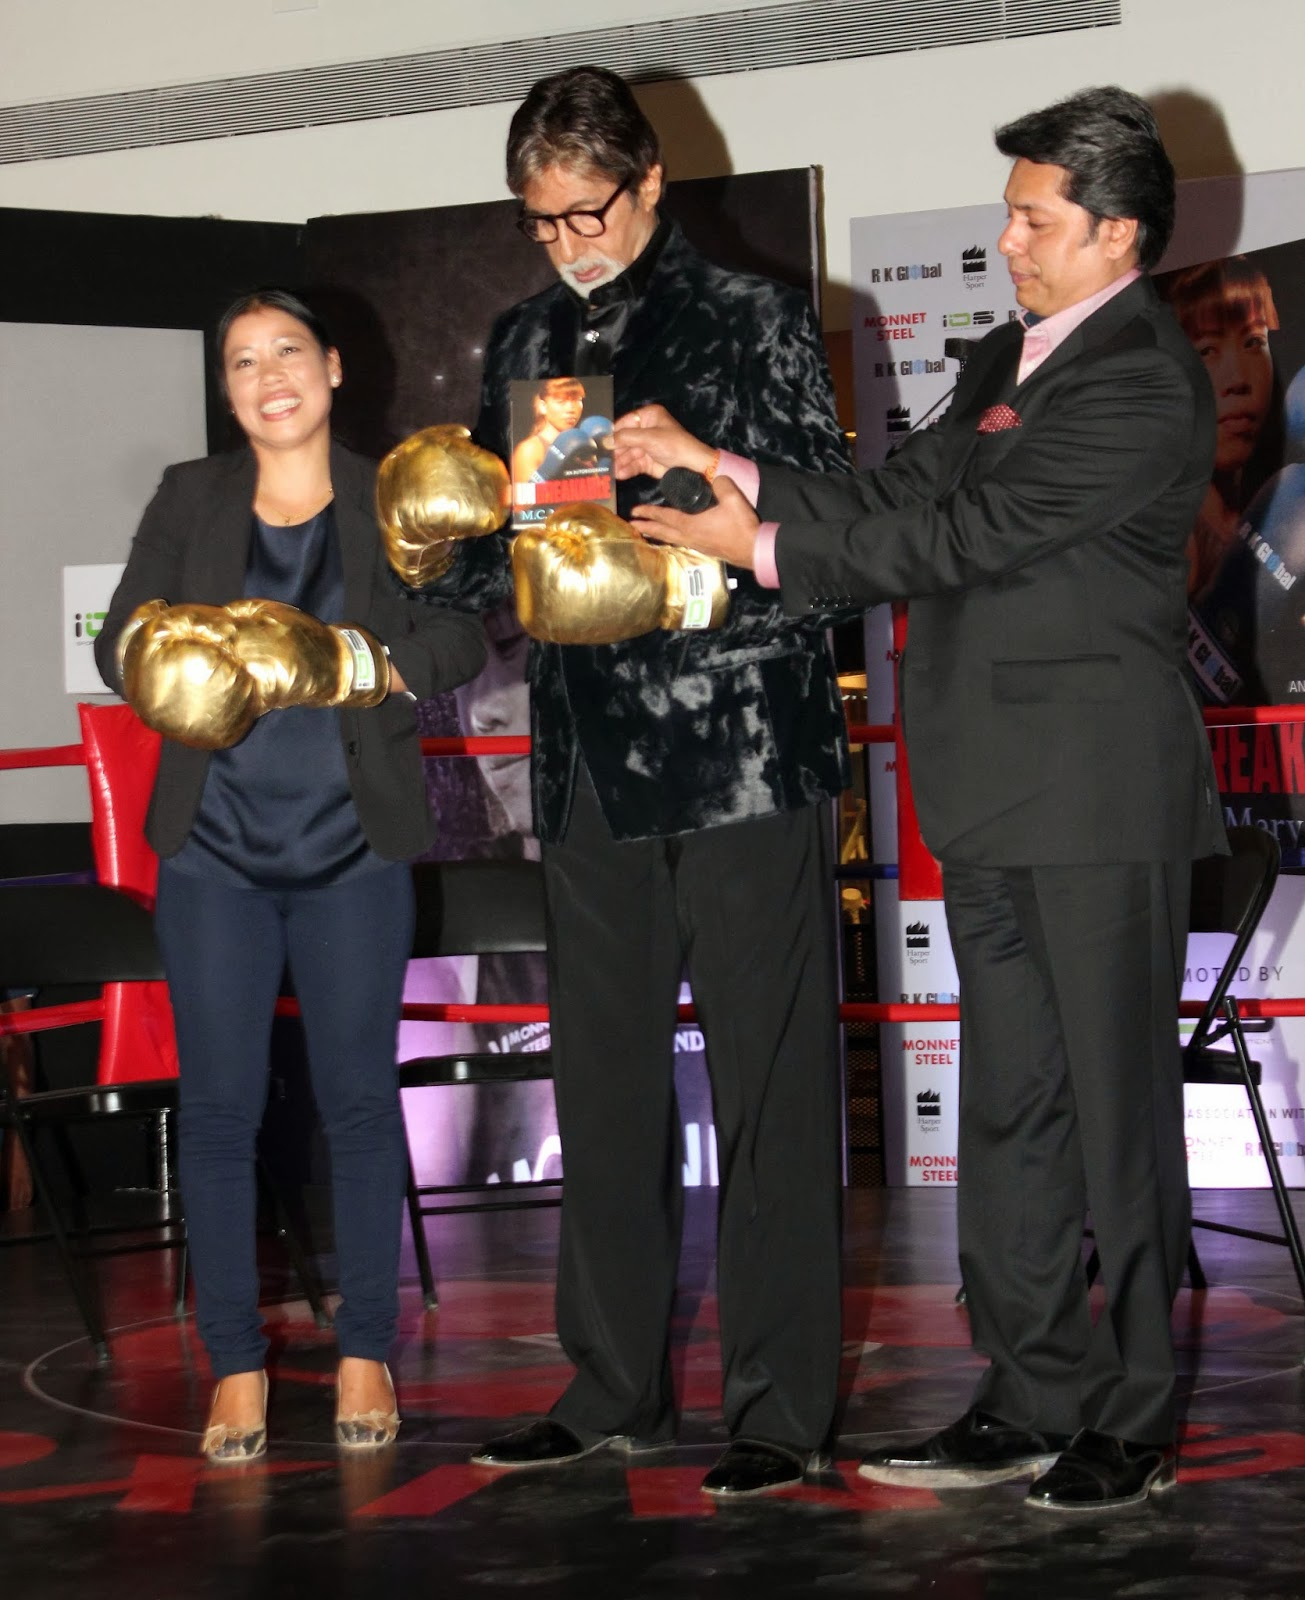 http://4.bp.blogspot.com/-koAbFk1-7fI/UqdNoVkC9KI/AAAAAAABmio/QvrYNTSbE2c/s1600/Amitabh-Launch-The-Biography-Of-Olympics-Medallist-And-Boxer-Mary-Kom-43.JPG